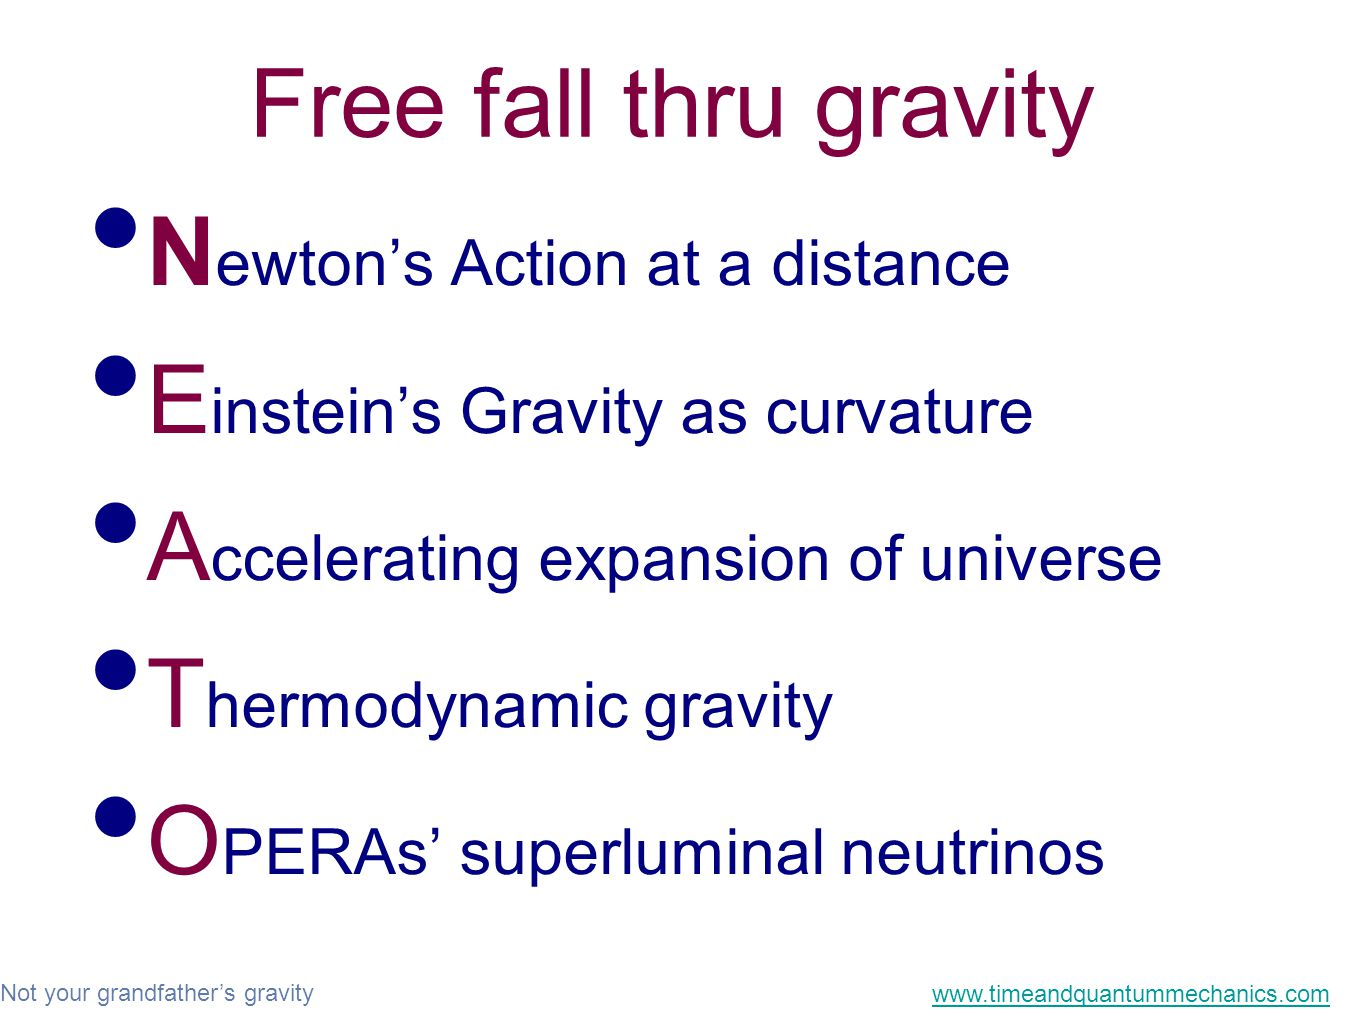 Not your grandfather's gravity www.timeandquantummechanics.com Newton's Action at a distance Three cheers for the Black Death The apple & the heavens Endless Ellipses most beautiful Jupiter's Moons not on schedule